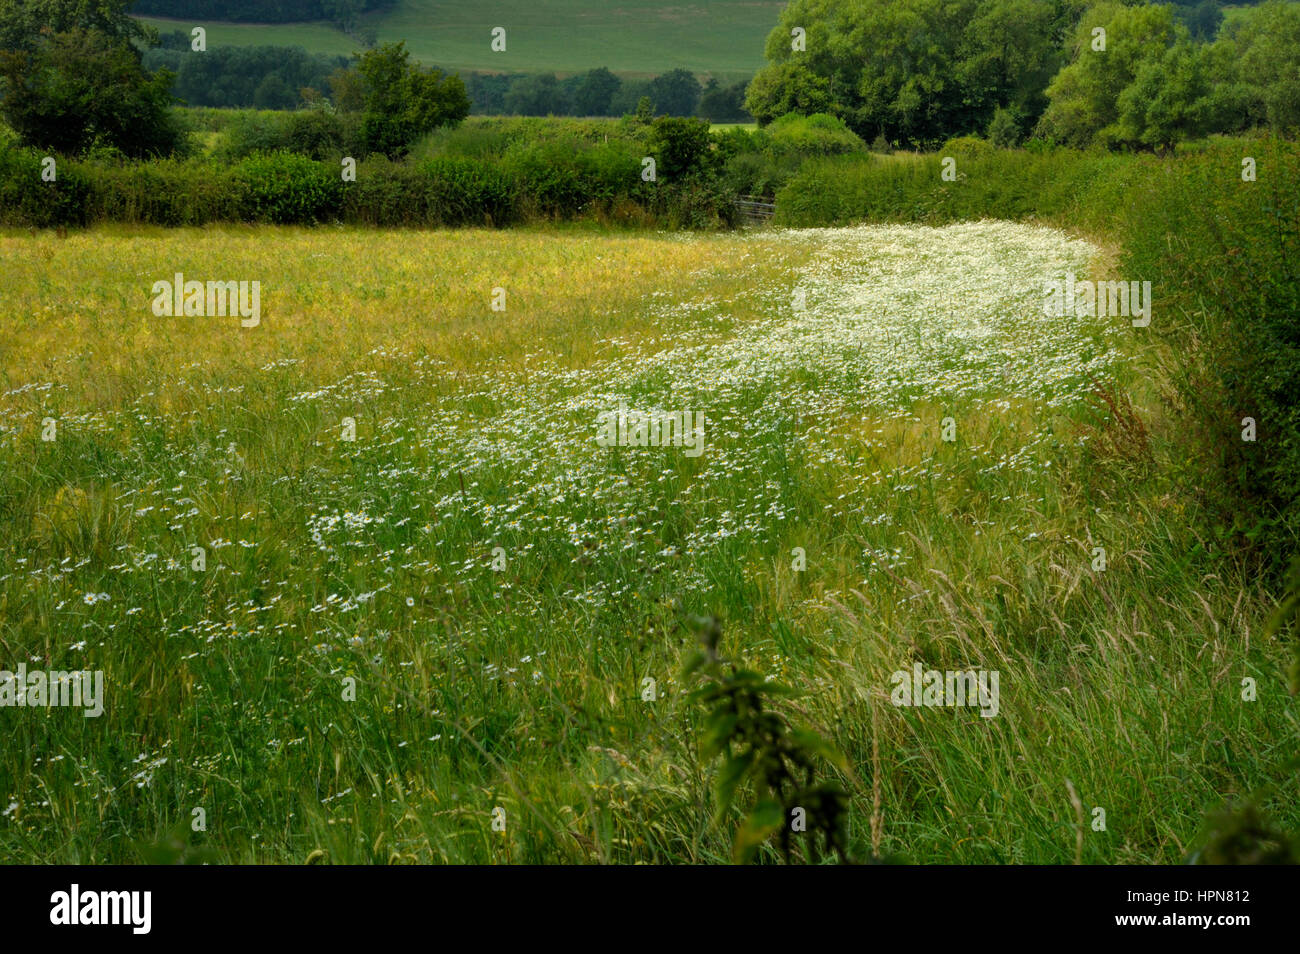 Scentless Mayweed, Tripleurospermum inodorum at the edge of a cultivated field - Stock Image